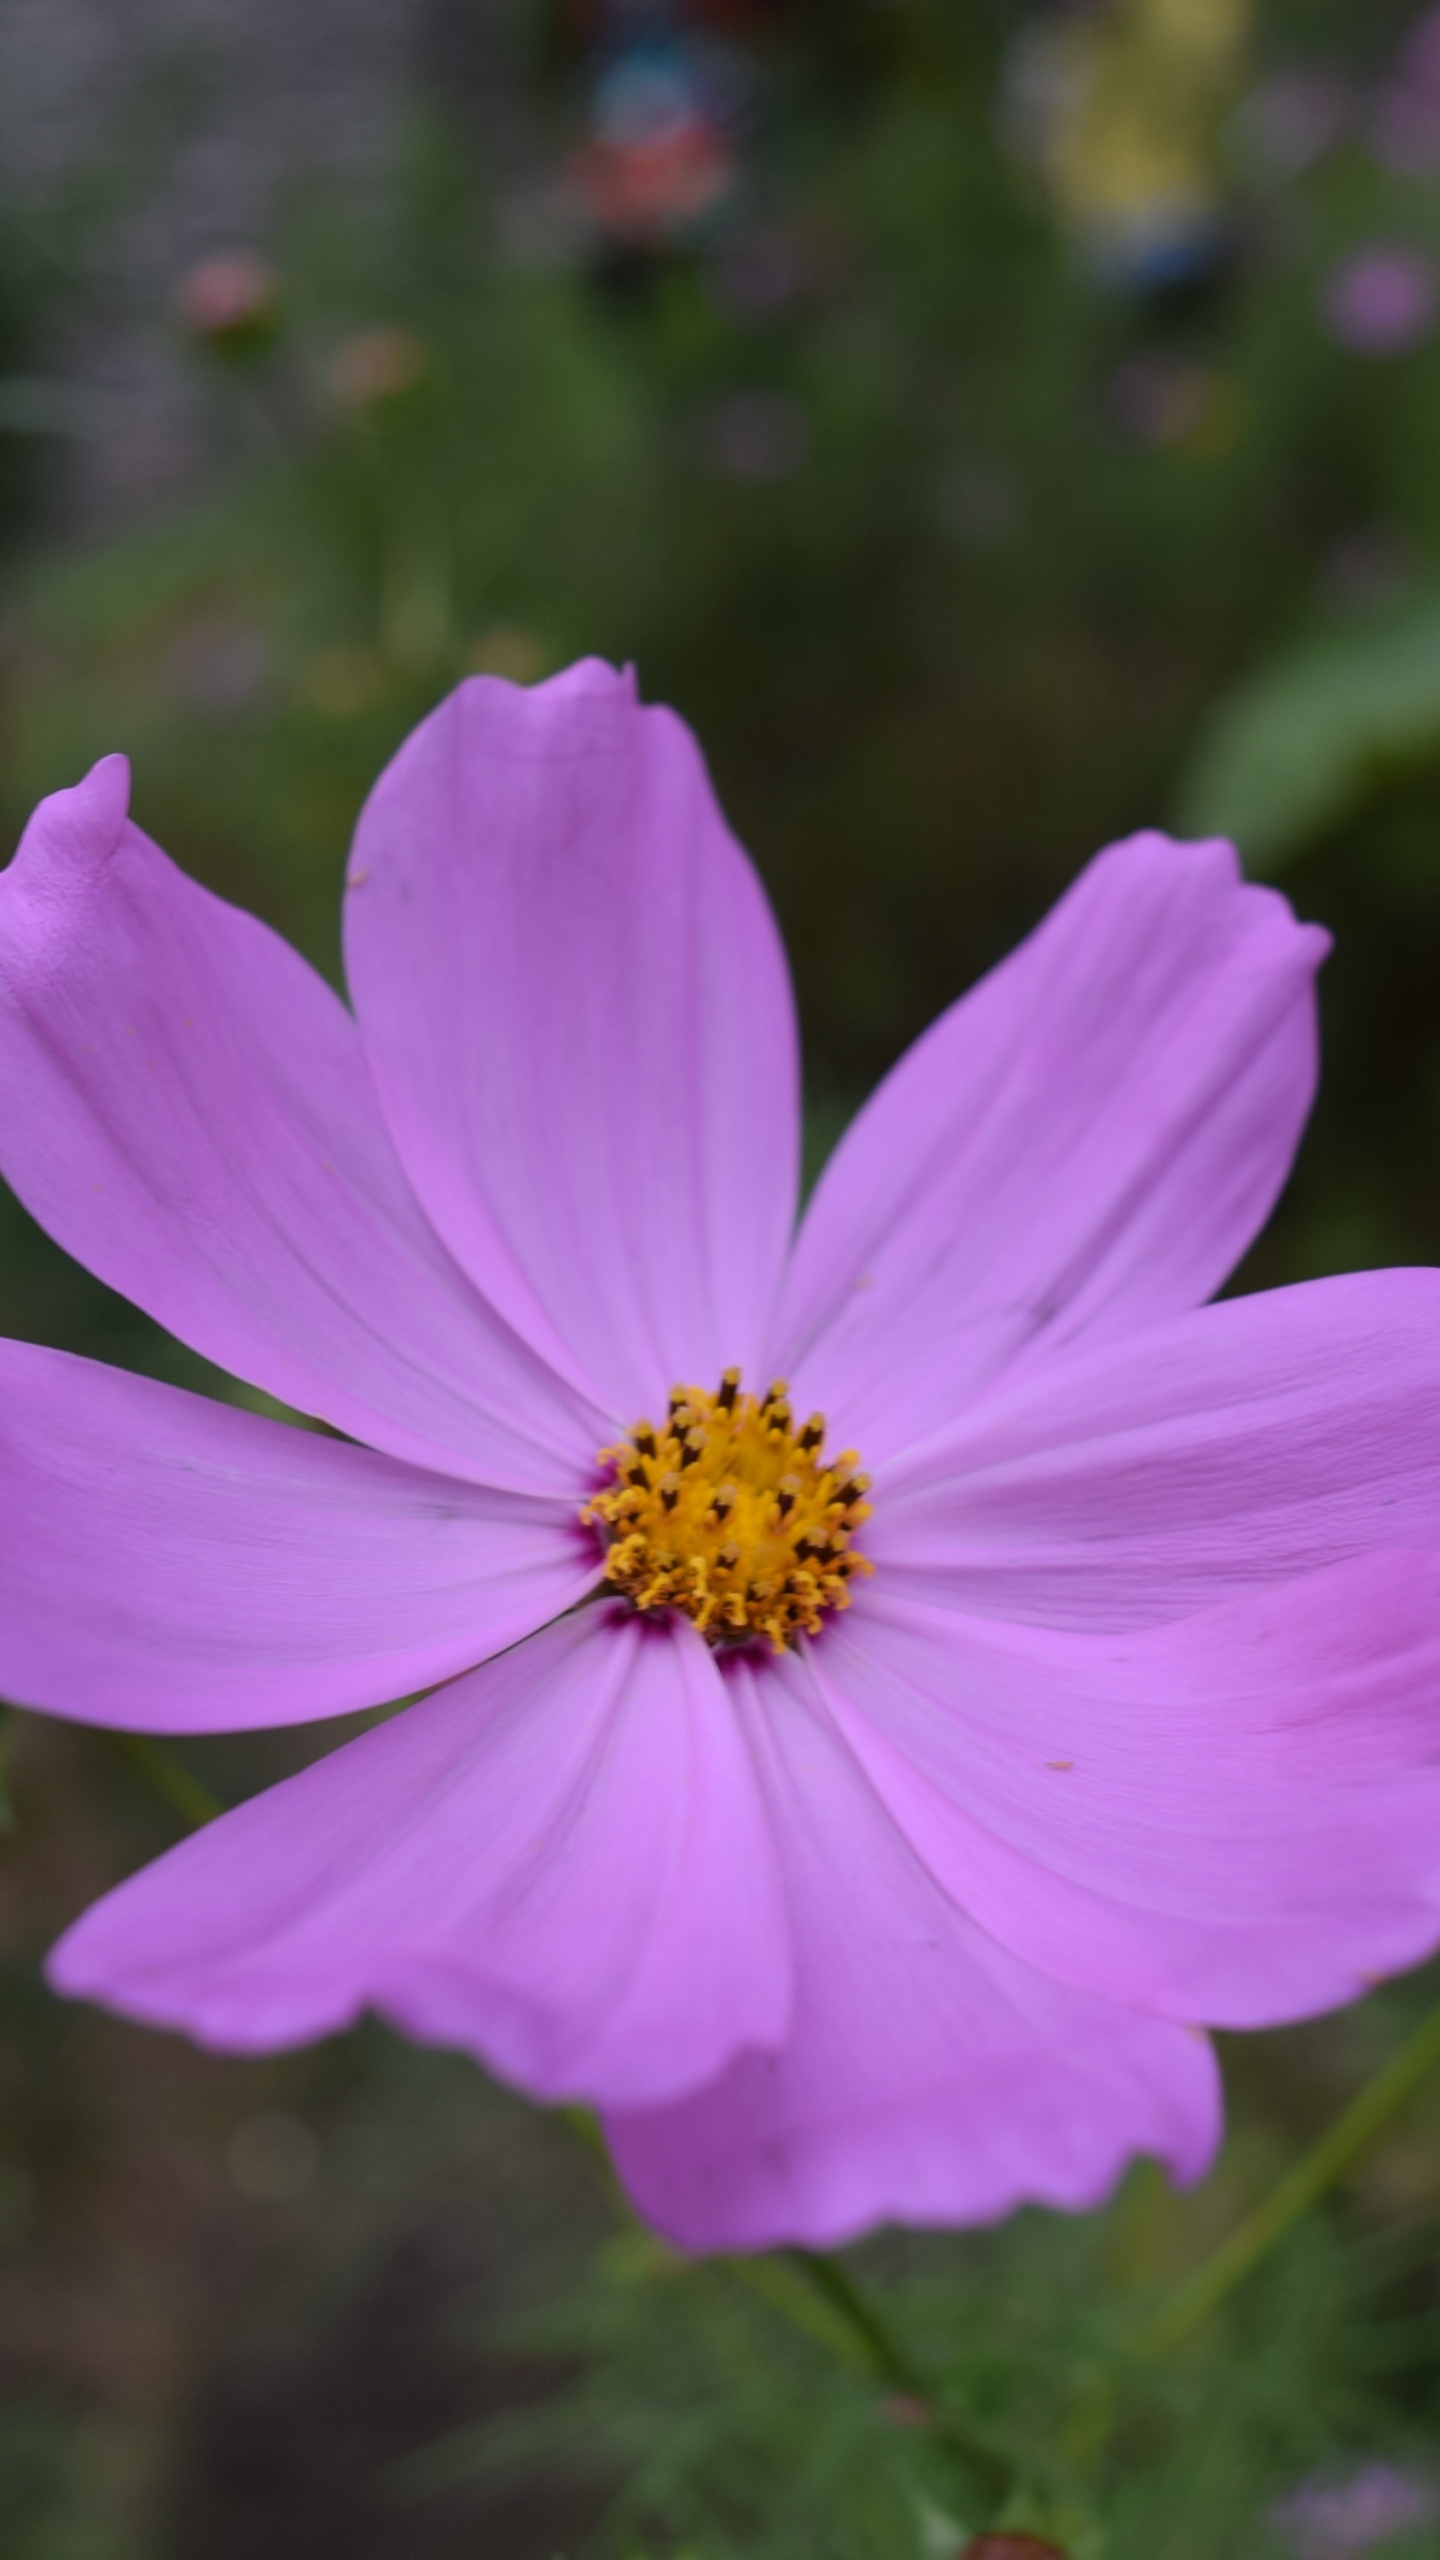 Download 1440x2560 Wallpaper Pink Cosmos Bright Flower Bloom Qhd Samsung Galaxy S6 S7 Edge Note Lg G4 1440x2560 Hd Image Background 6970